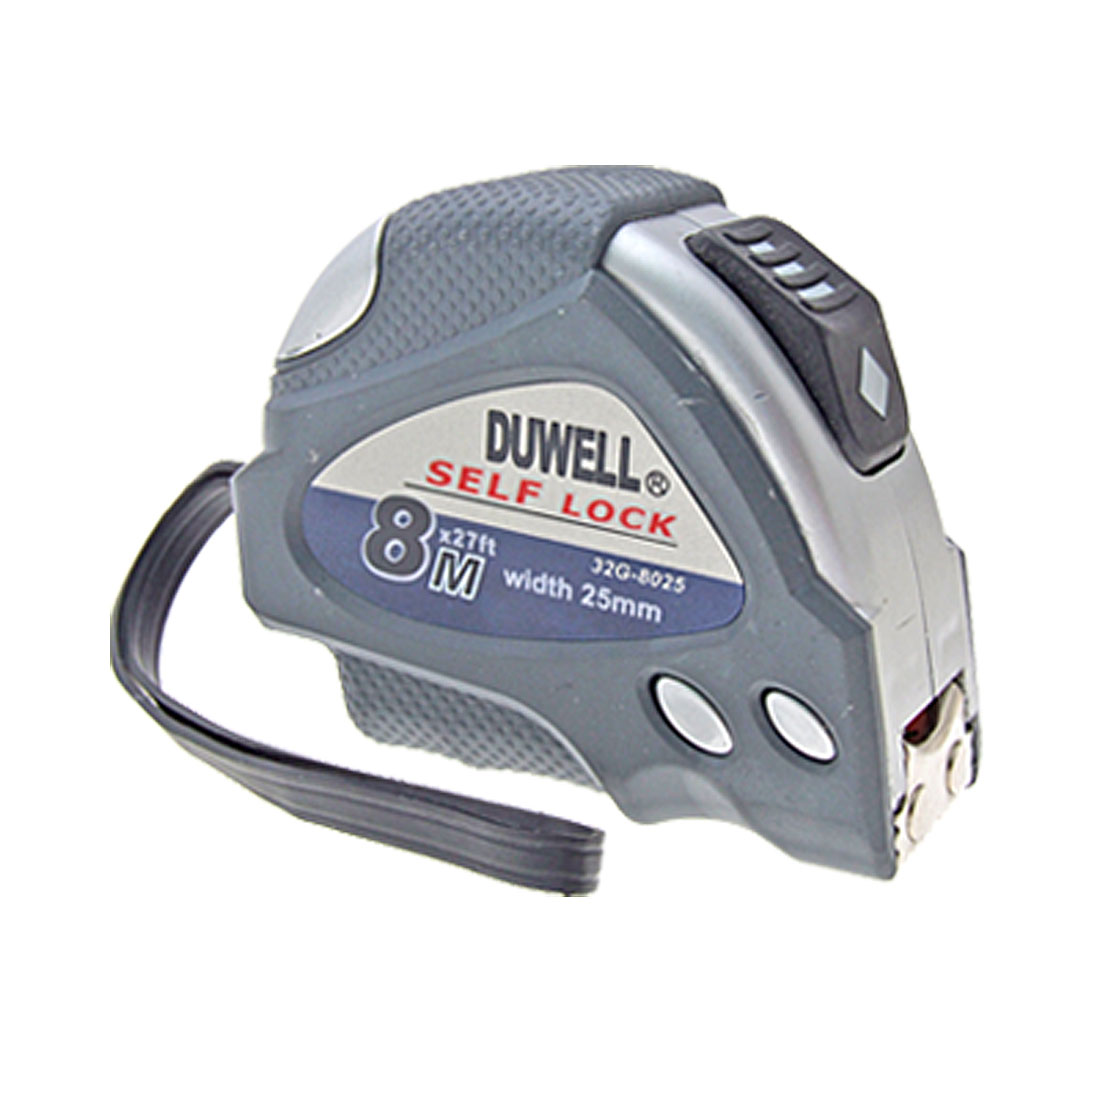 8m-Long-Gray-Silver-Tone-Steel-Tape-Measure-Tool